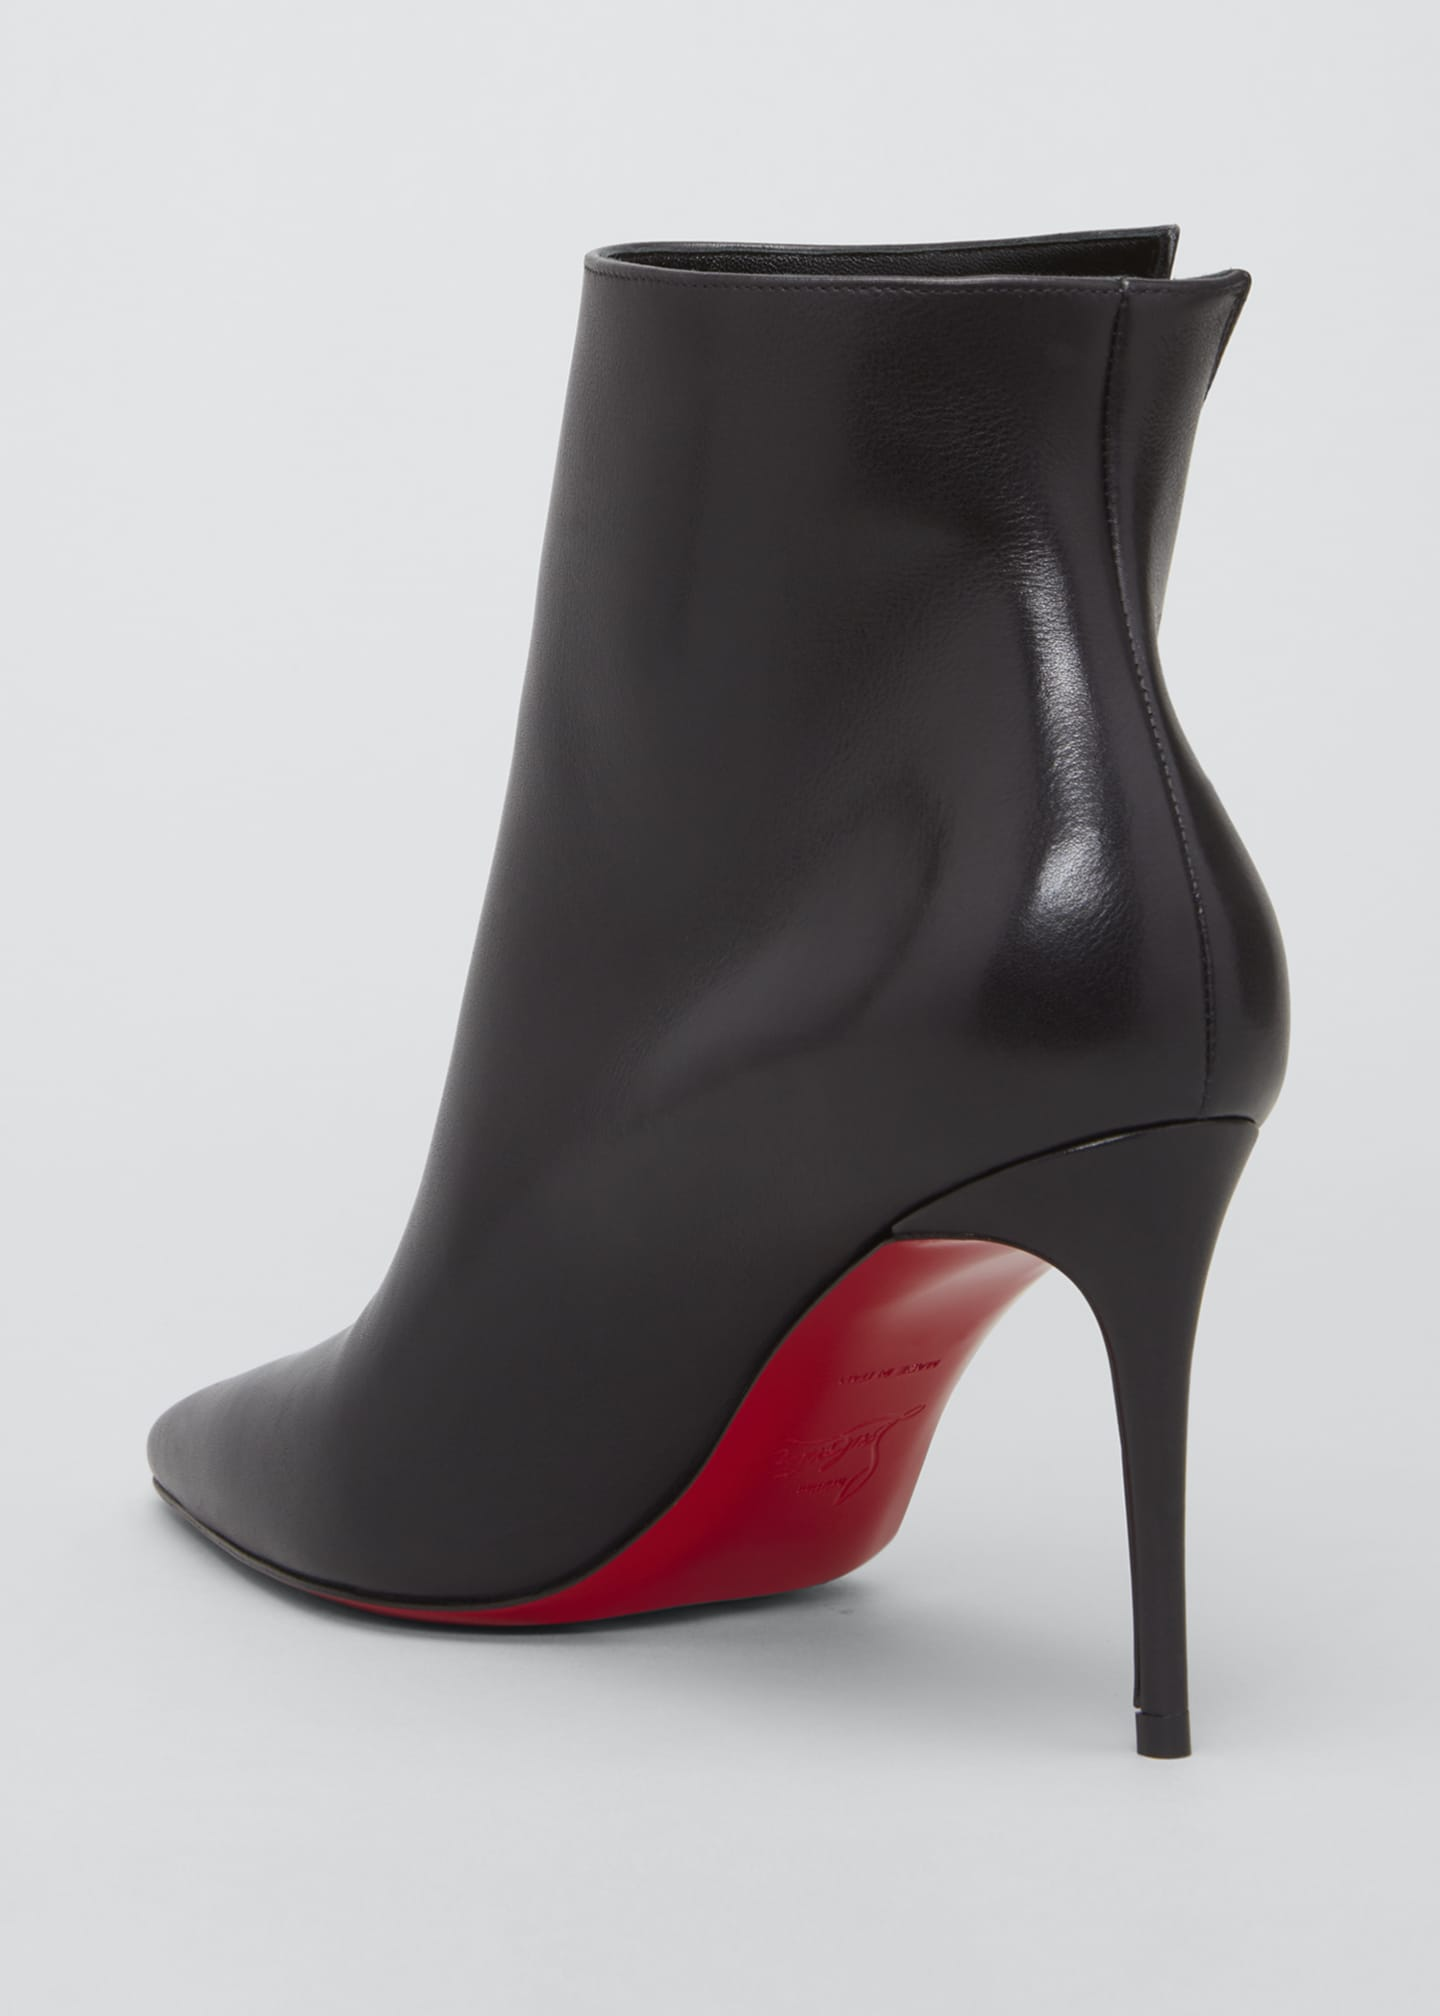 Image 2 of 3: Birigkate Sleek Zip Red Sole Booties